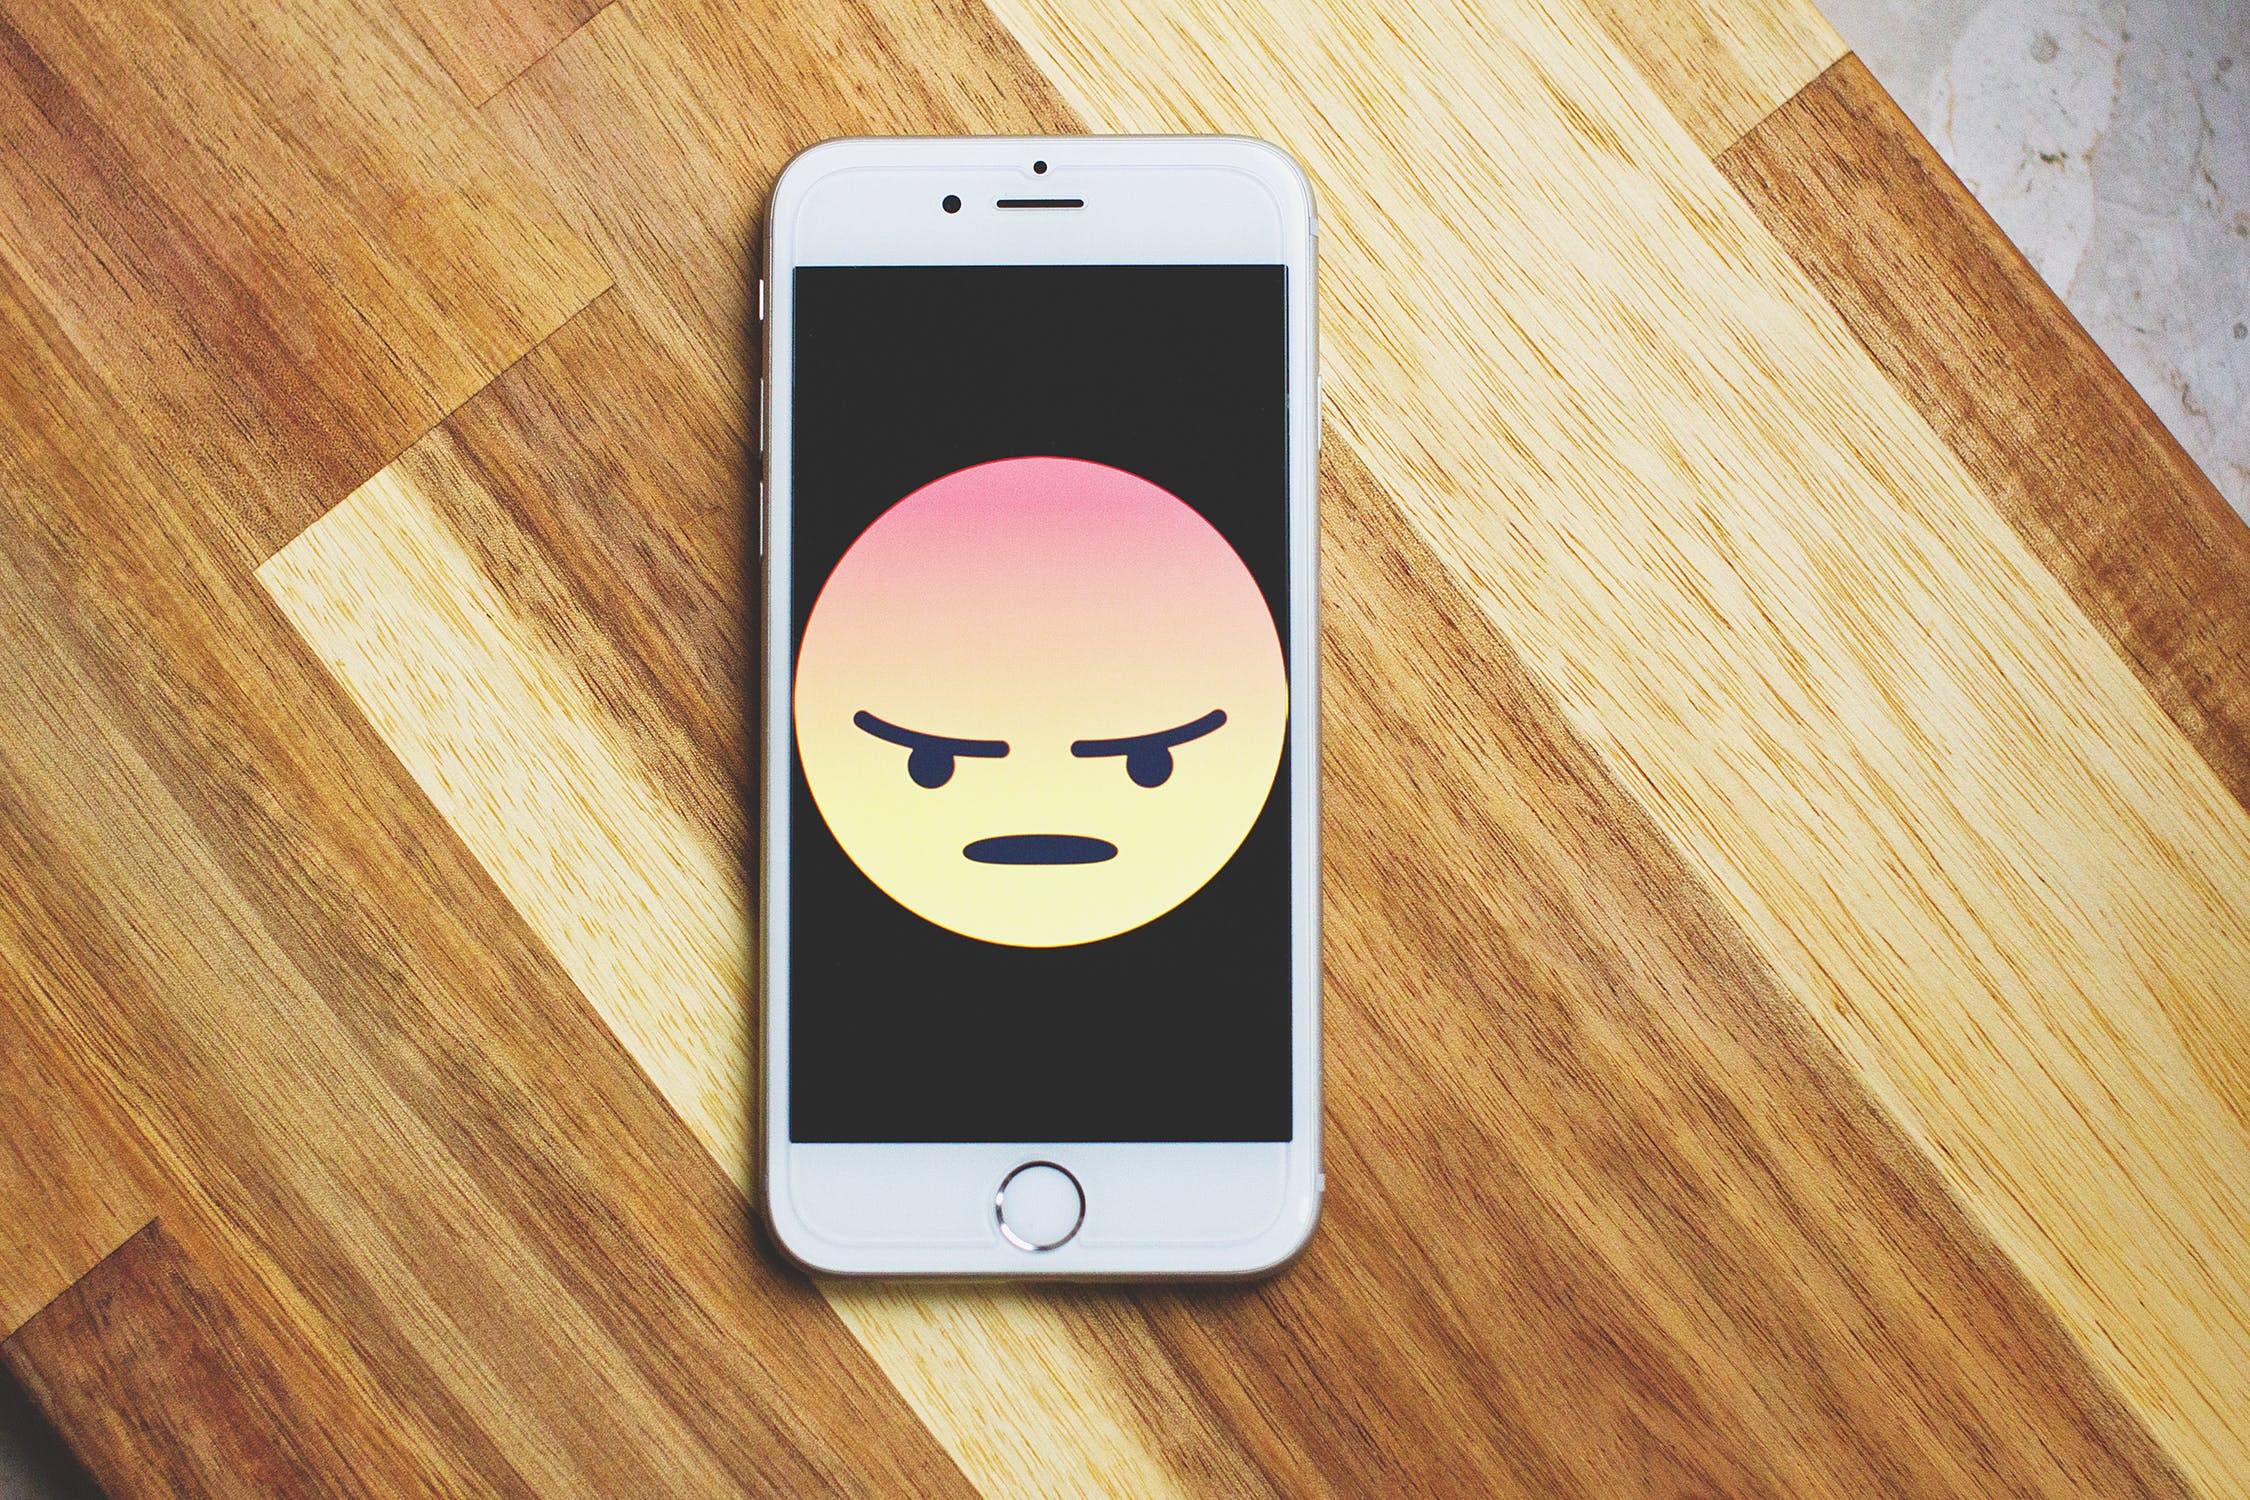 Angry emoji on an iphone screen